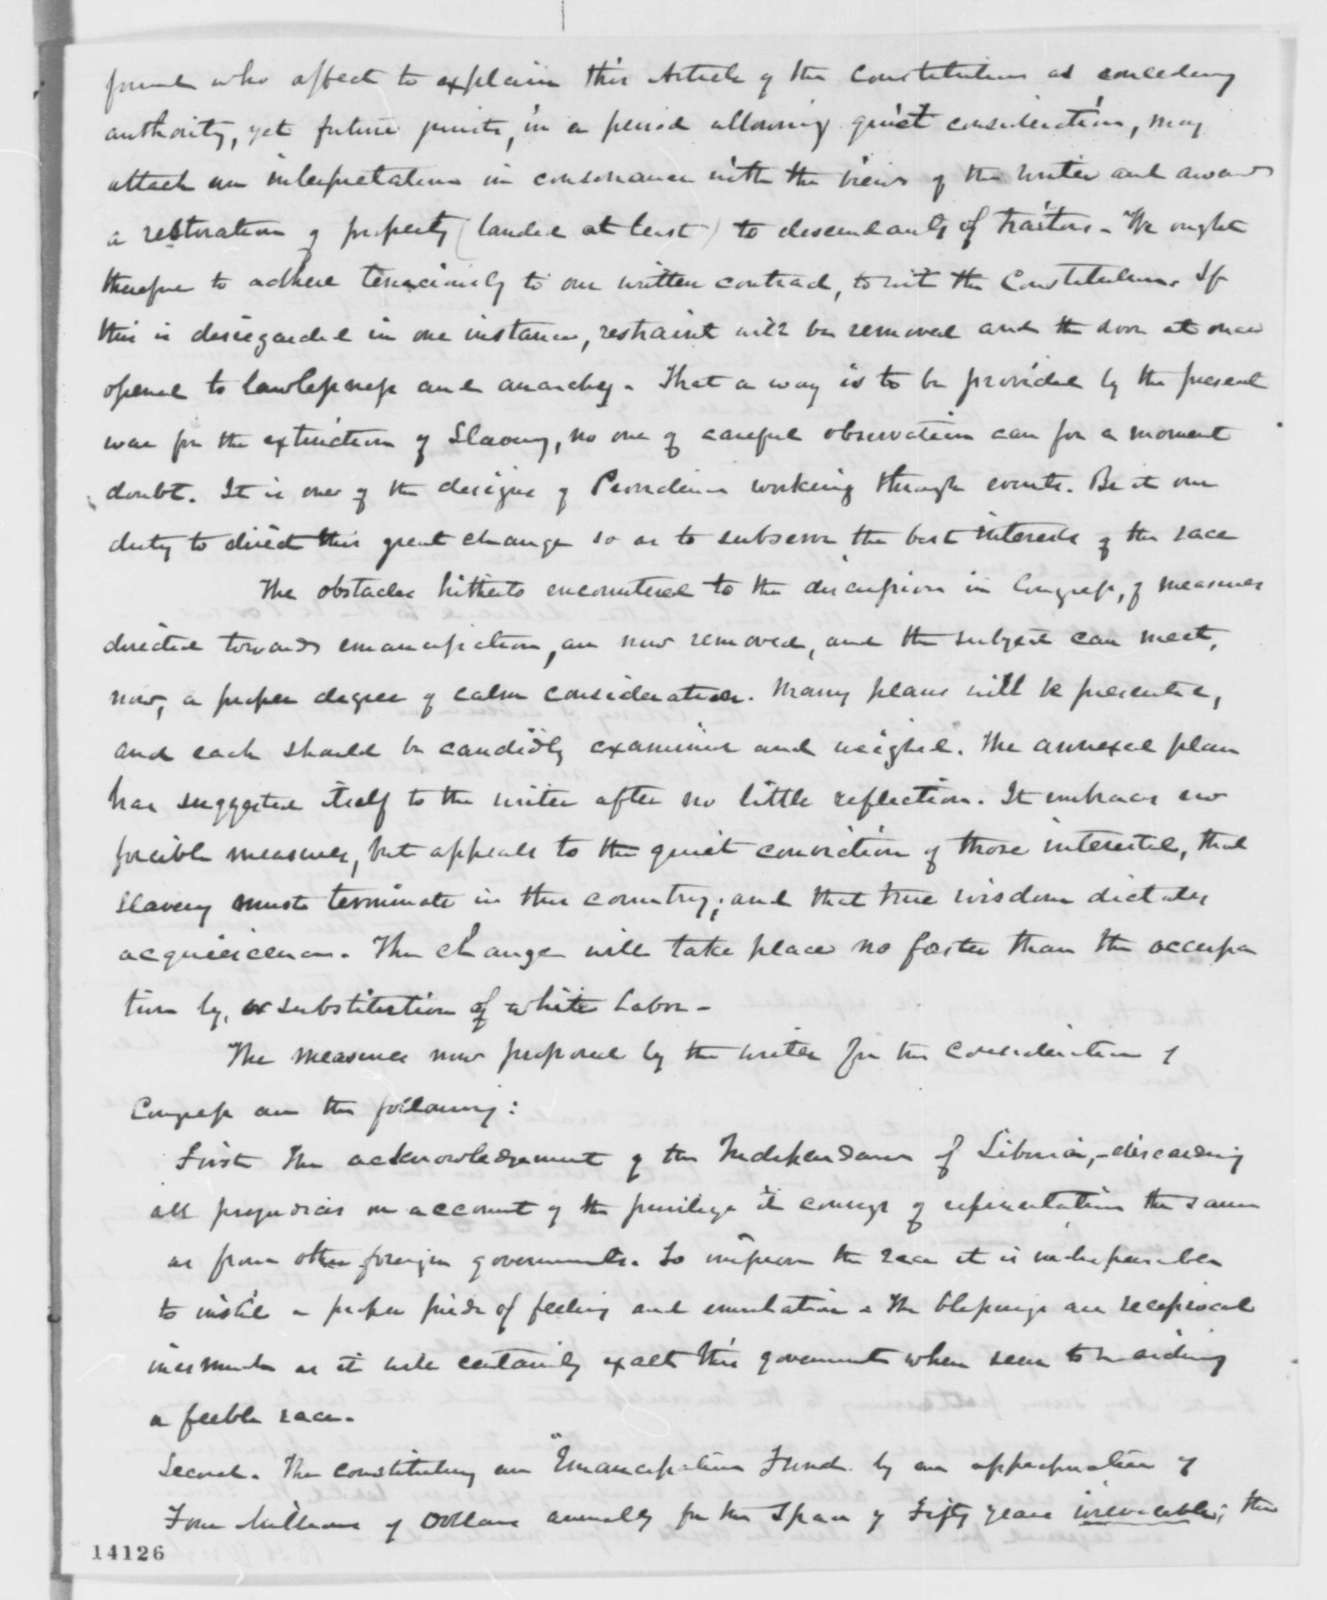 B. H. Wright to Abraham Lincoln, Wednesday, January 22, 1862  (Plan for emancipation)